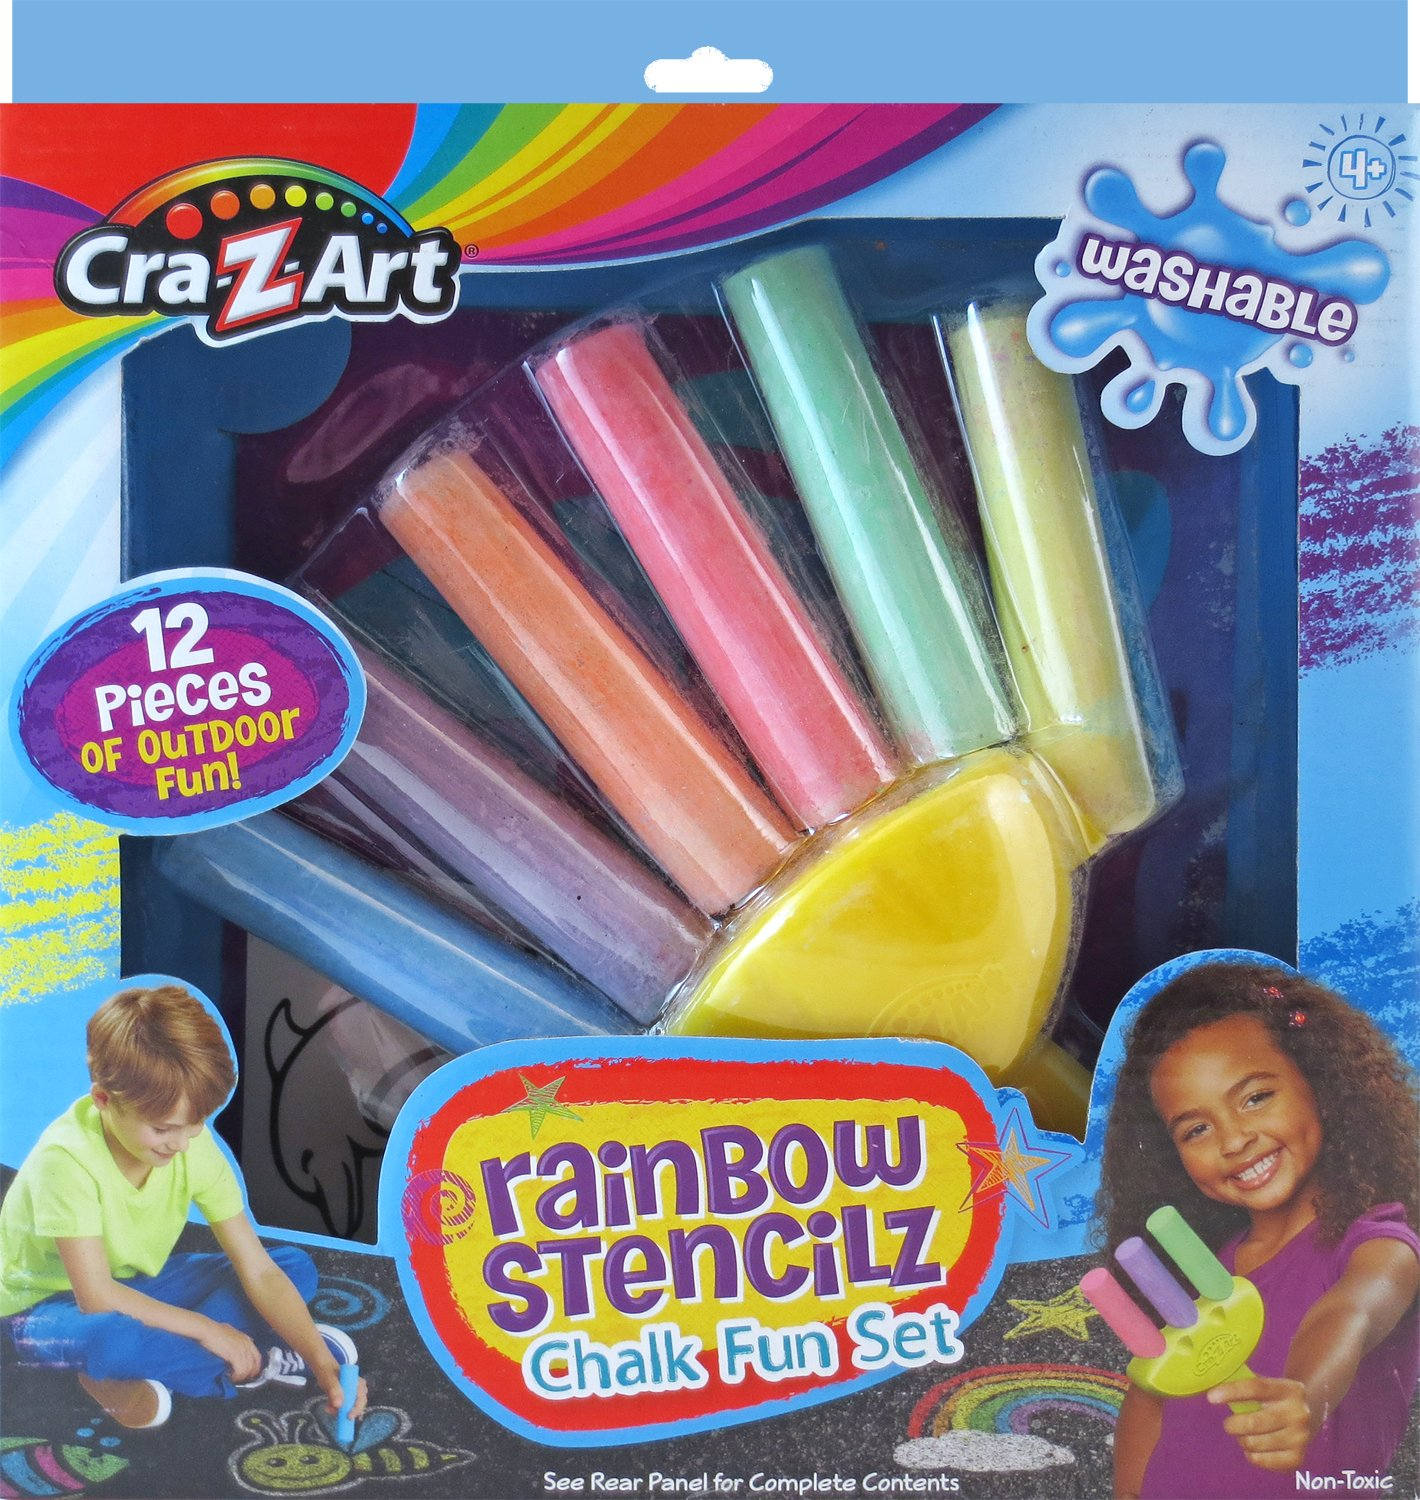 Cra-Z-Art Rainbow Stencilz Chalk Fun Set